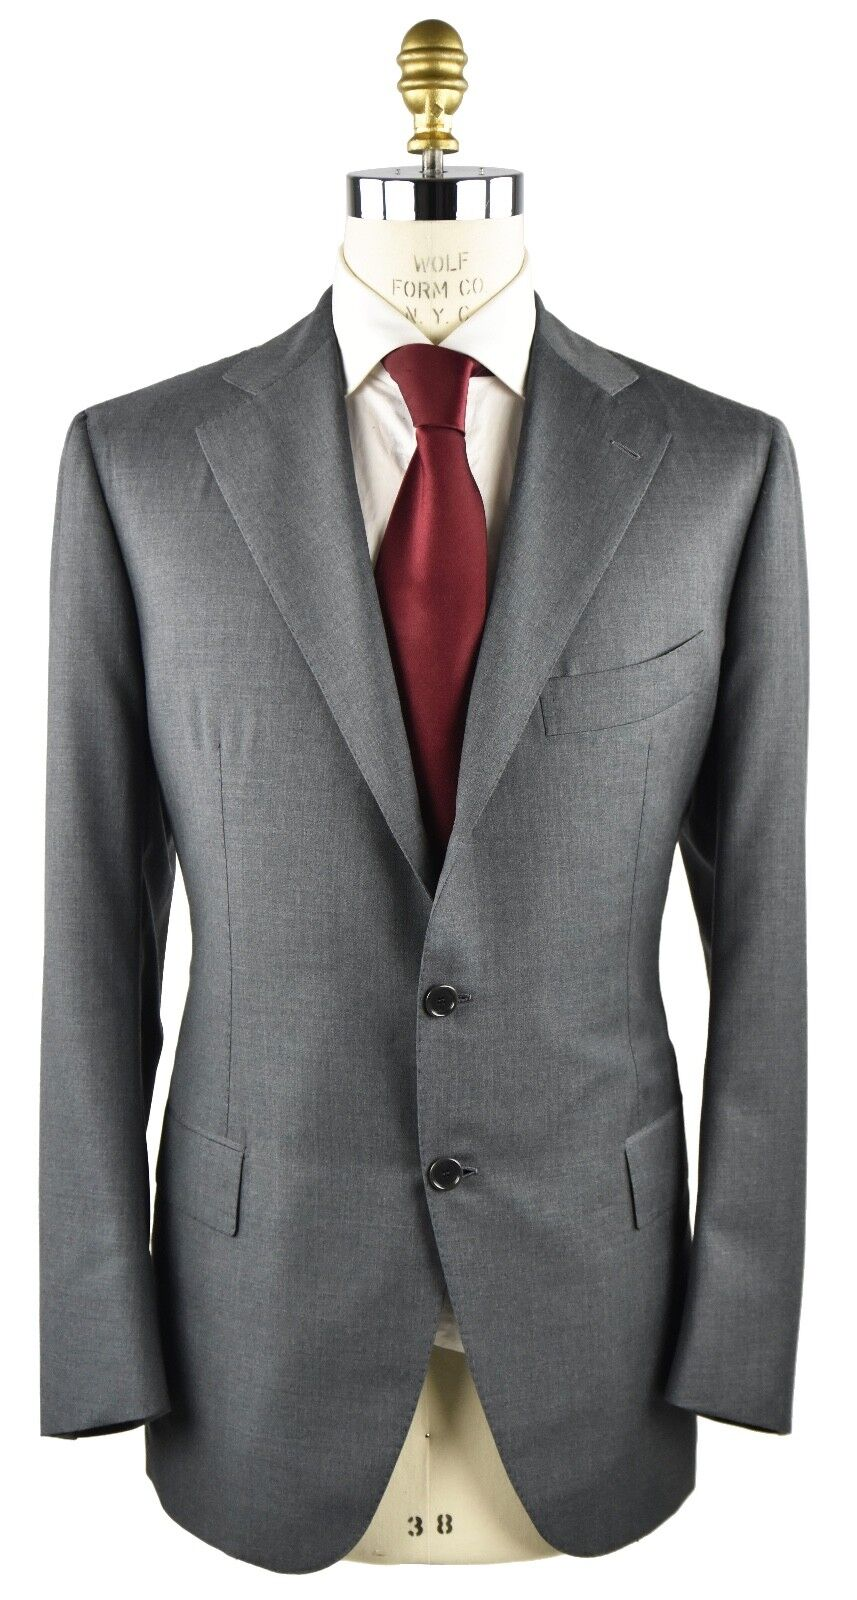 NEW 2018 CESARE ATTOLINI SUIT 100% WOOL SZ 46 US 56 R 18AVW25